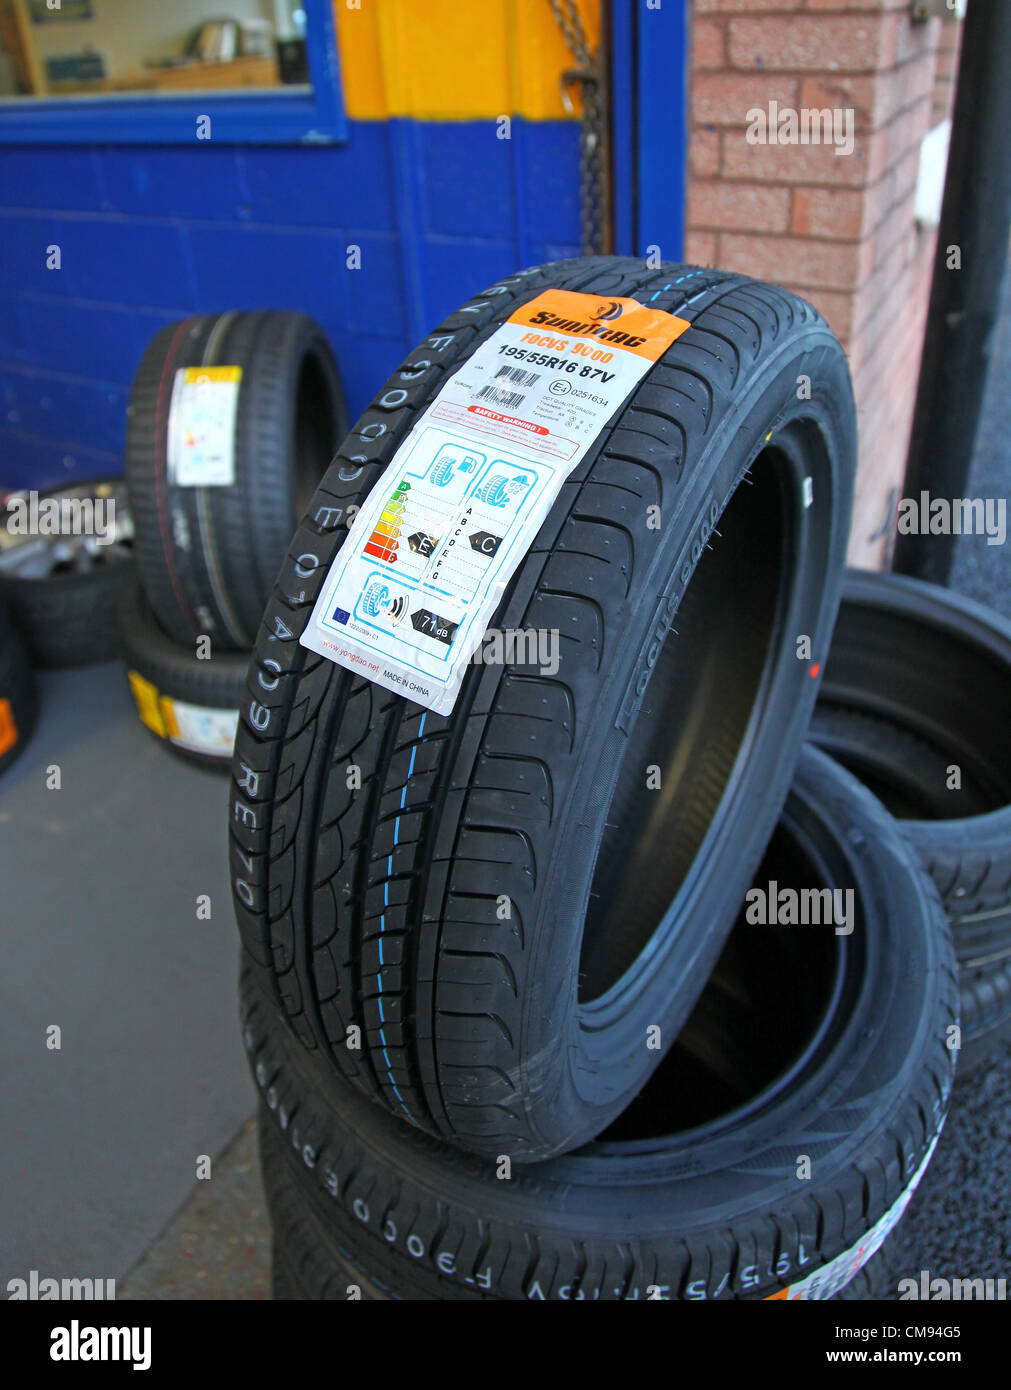 On 1 November 2012, new European tyre labelling regulations came into force that could make driving safer, more - Stock Image